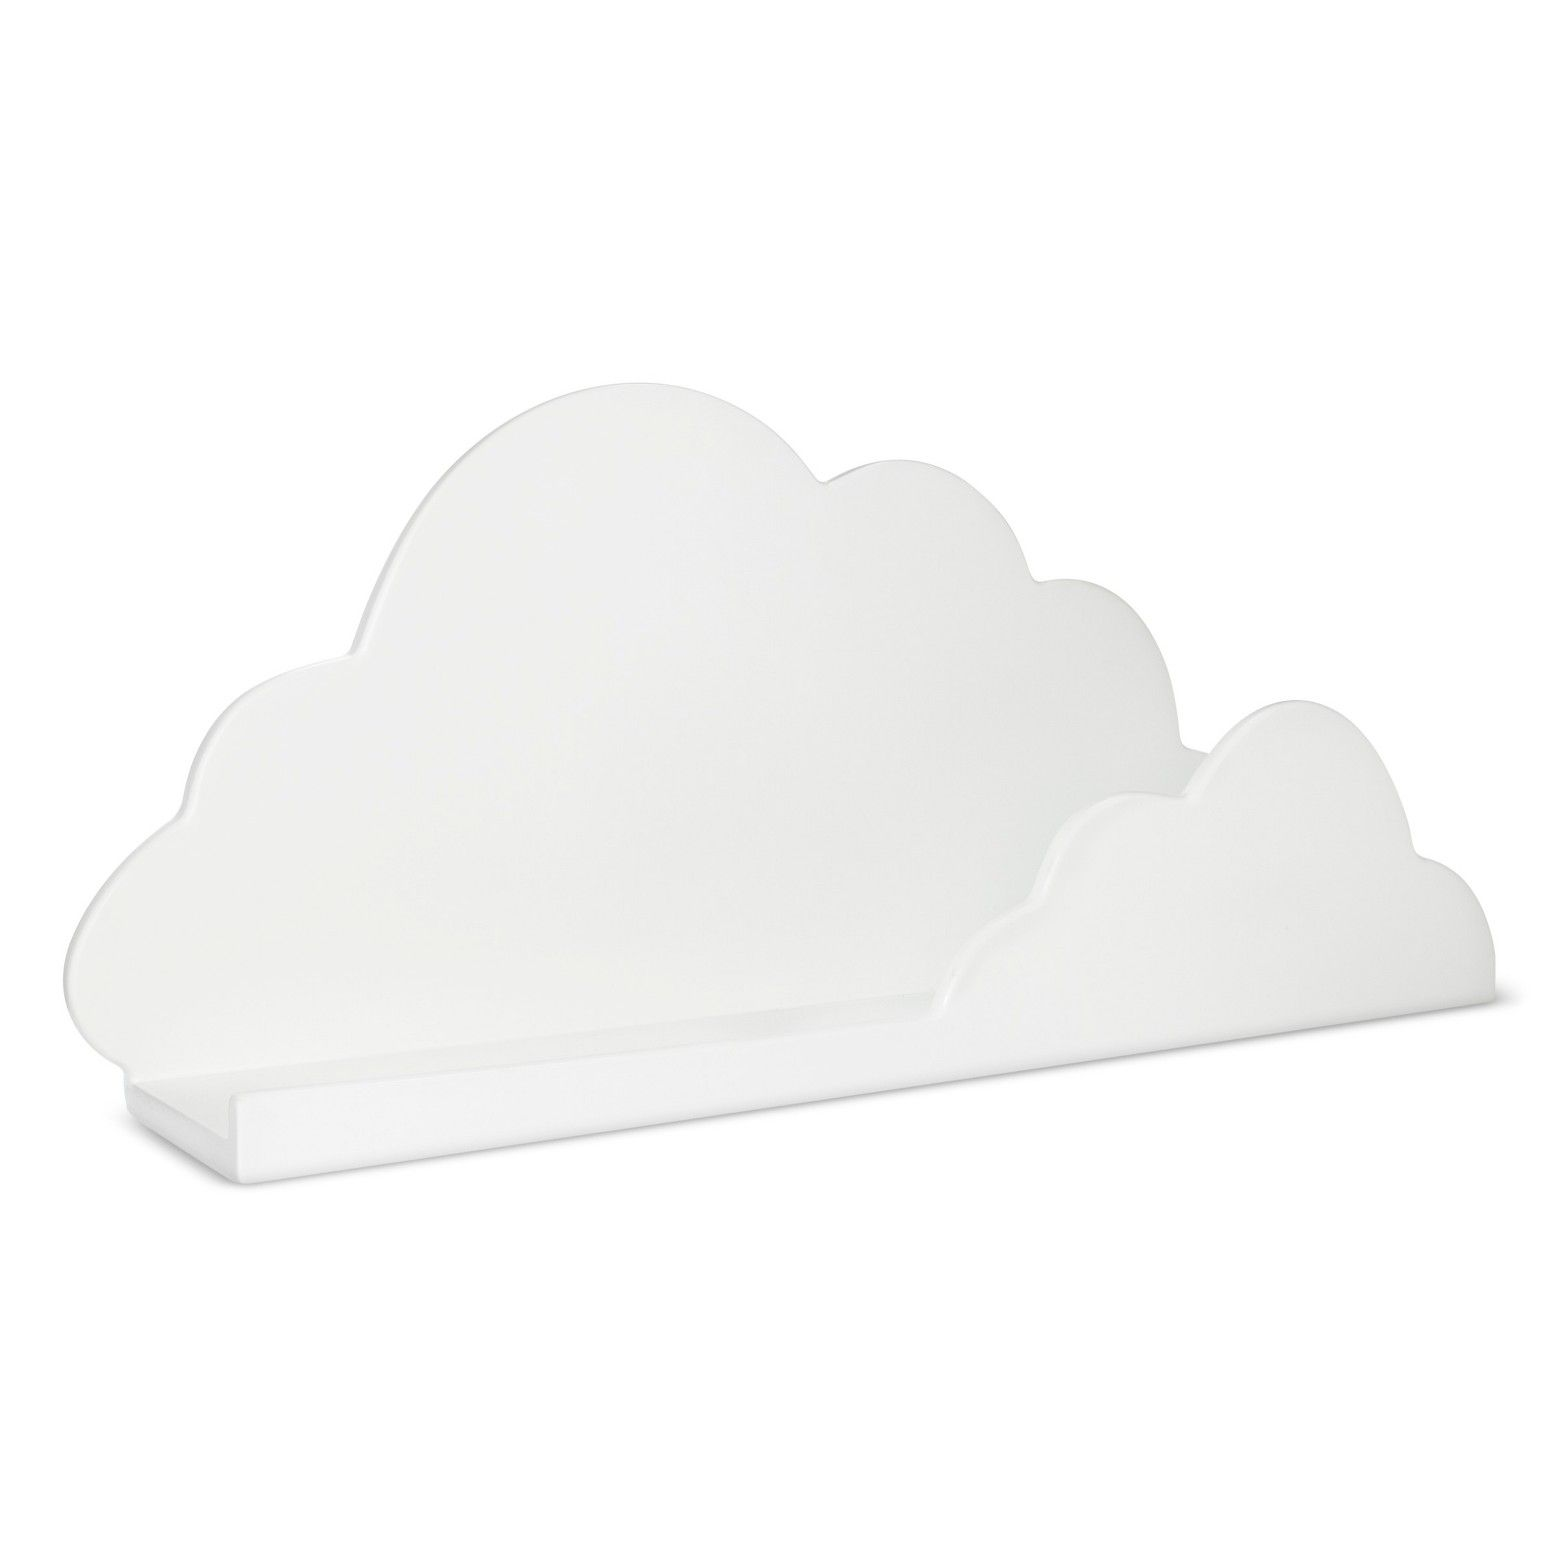 Pillowfort Cloud Decorative Wall Shelf White